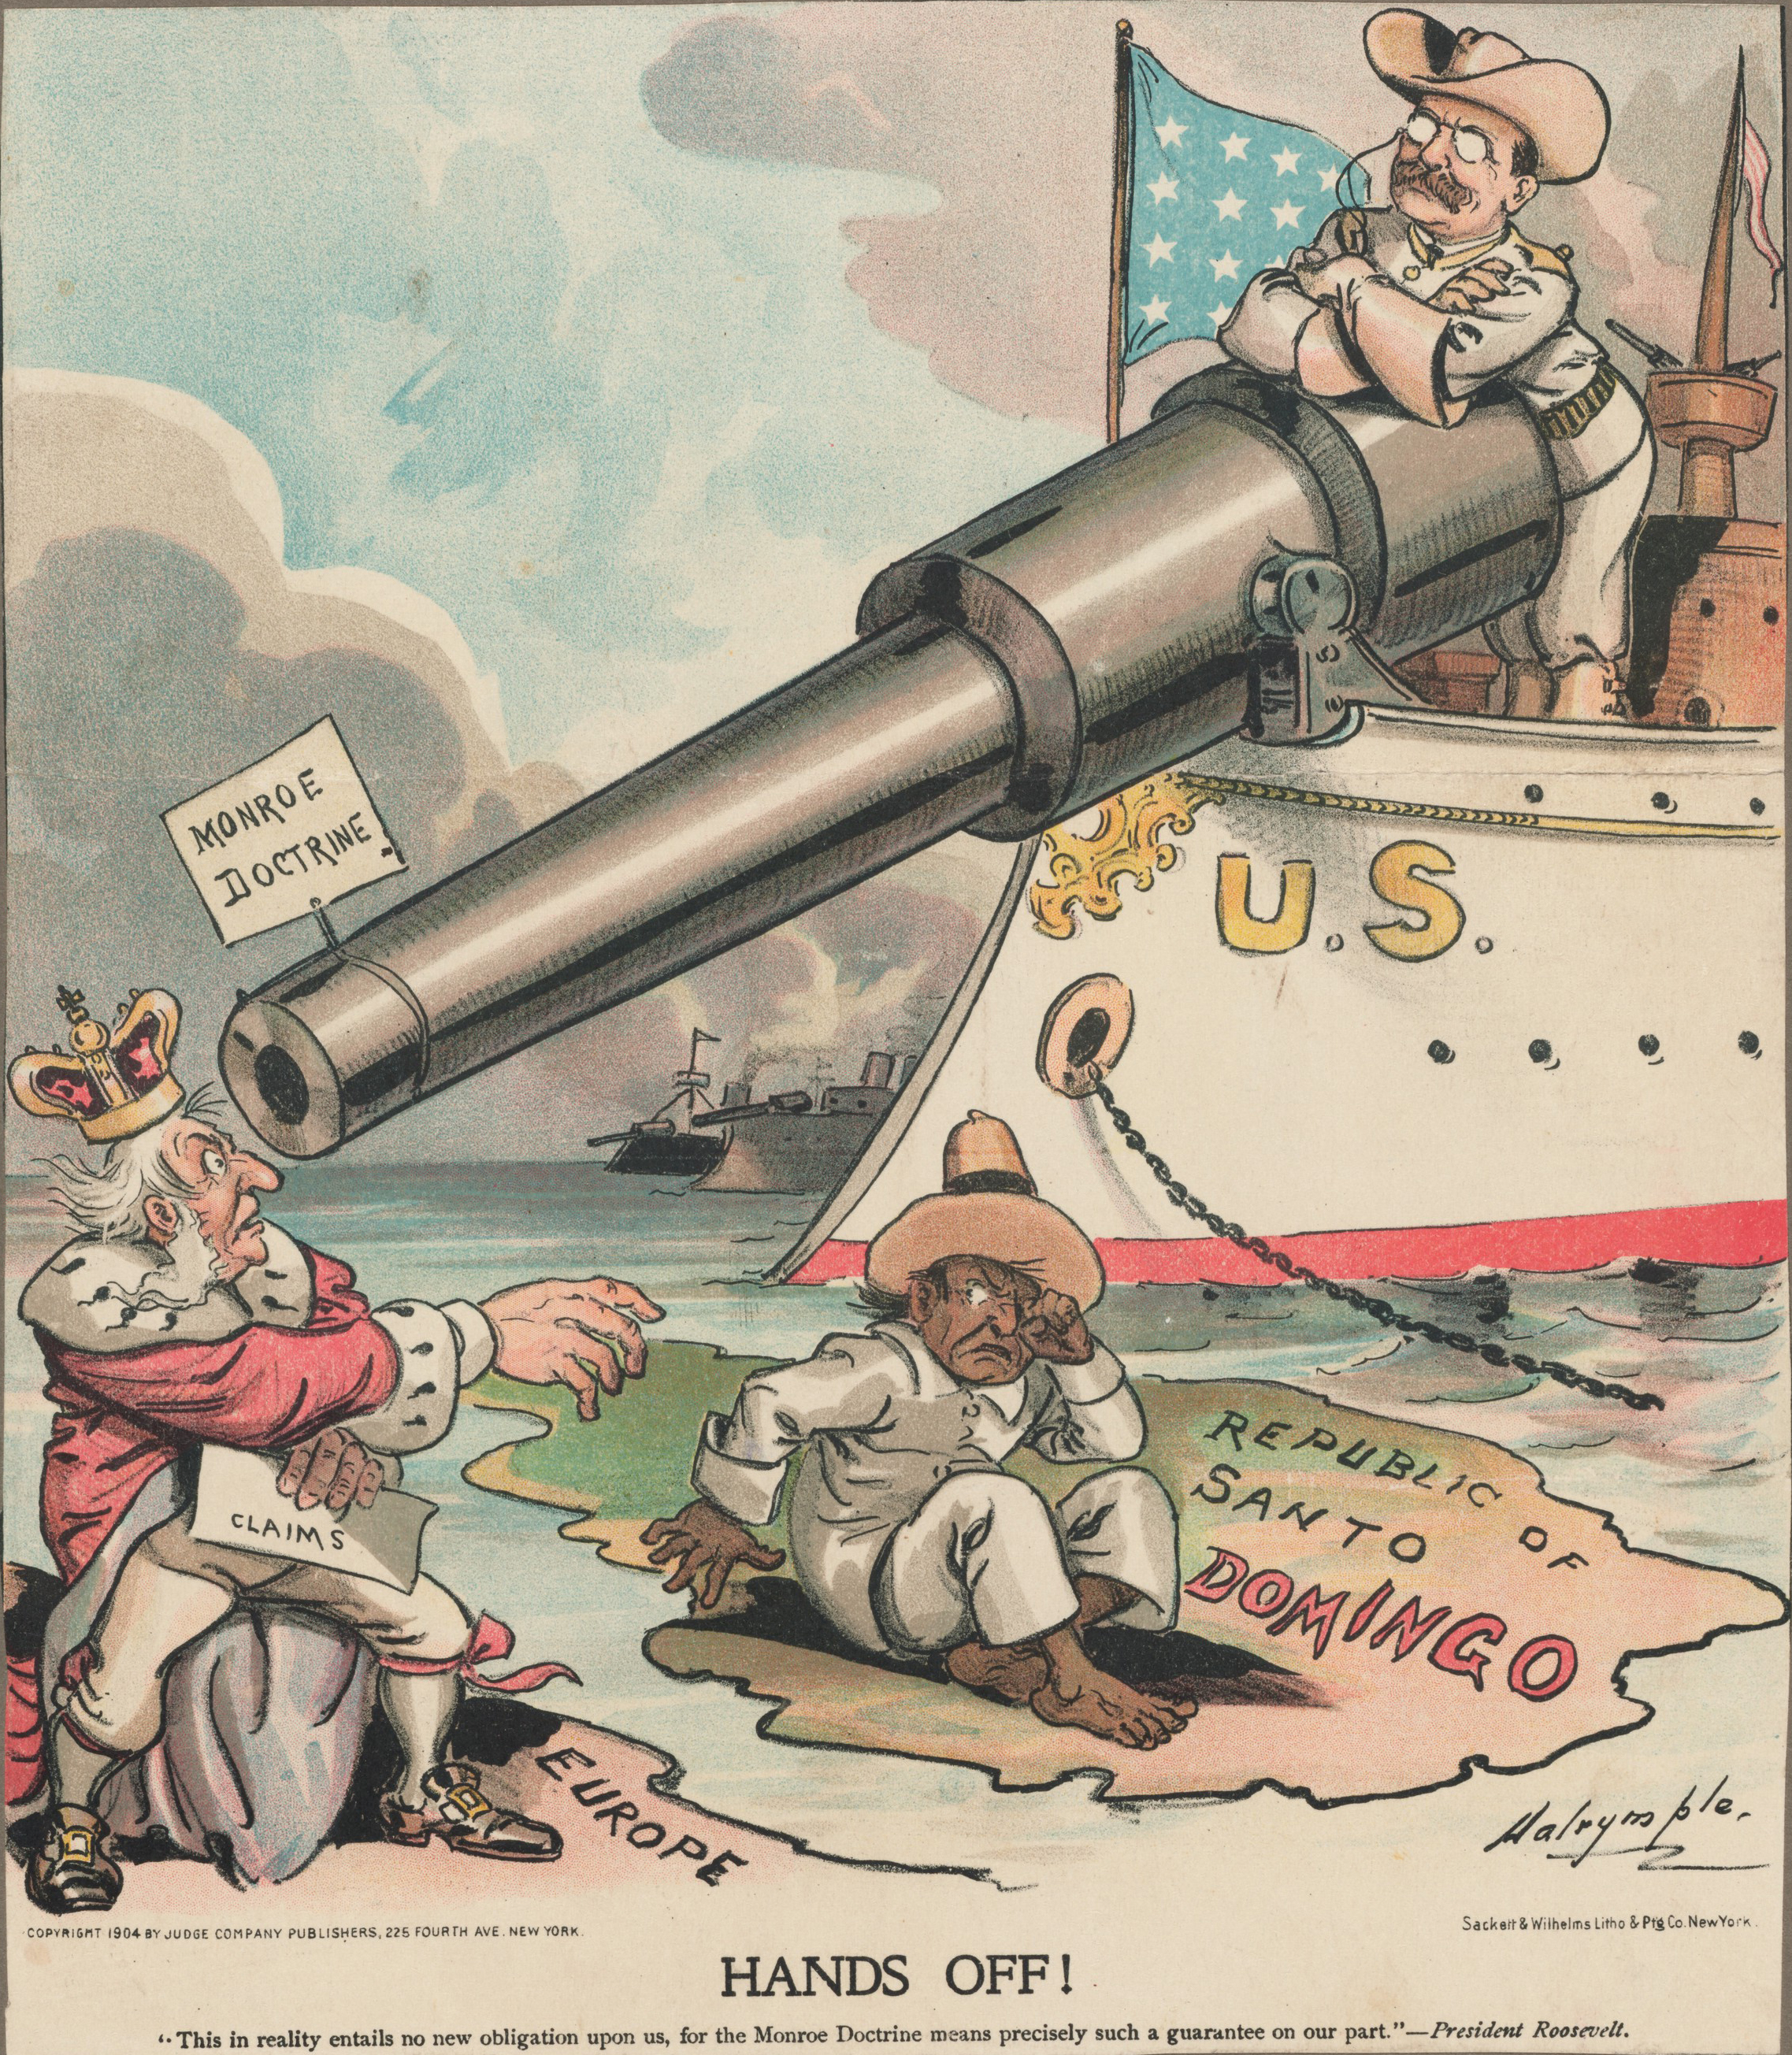 This political cartoon depicts Theodore Roosevelt's opposition to European influence in the Dominican Republic. Roosevelt monroe Doctrine cartoon.jpg